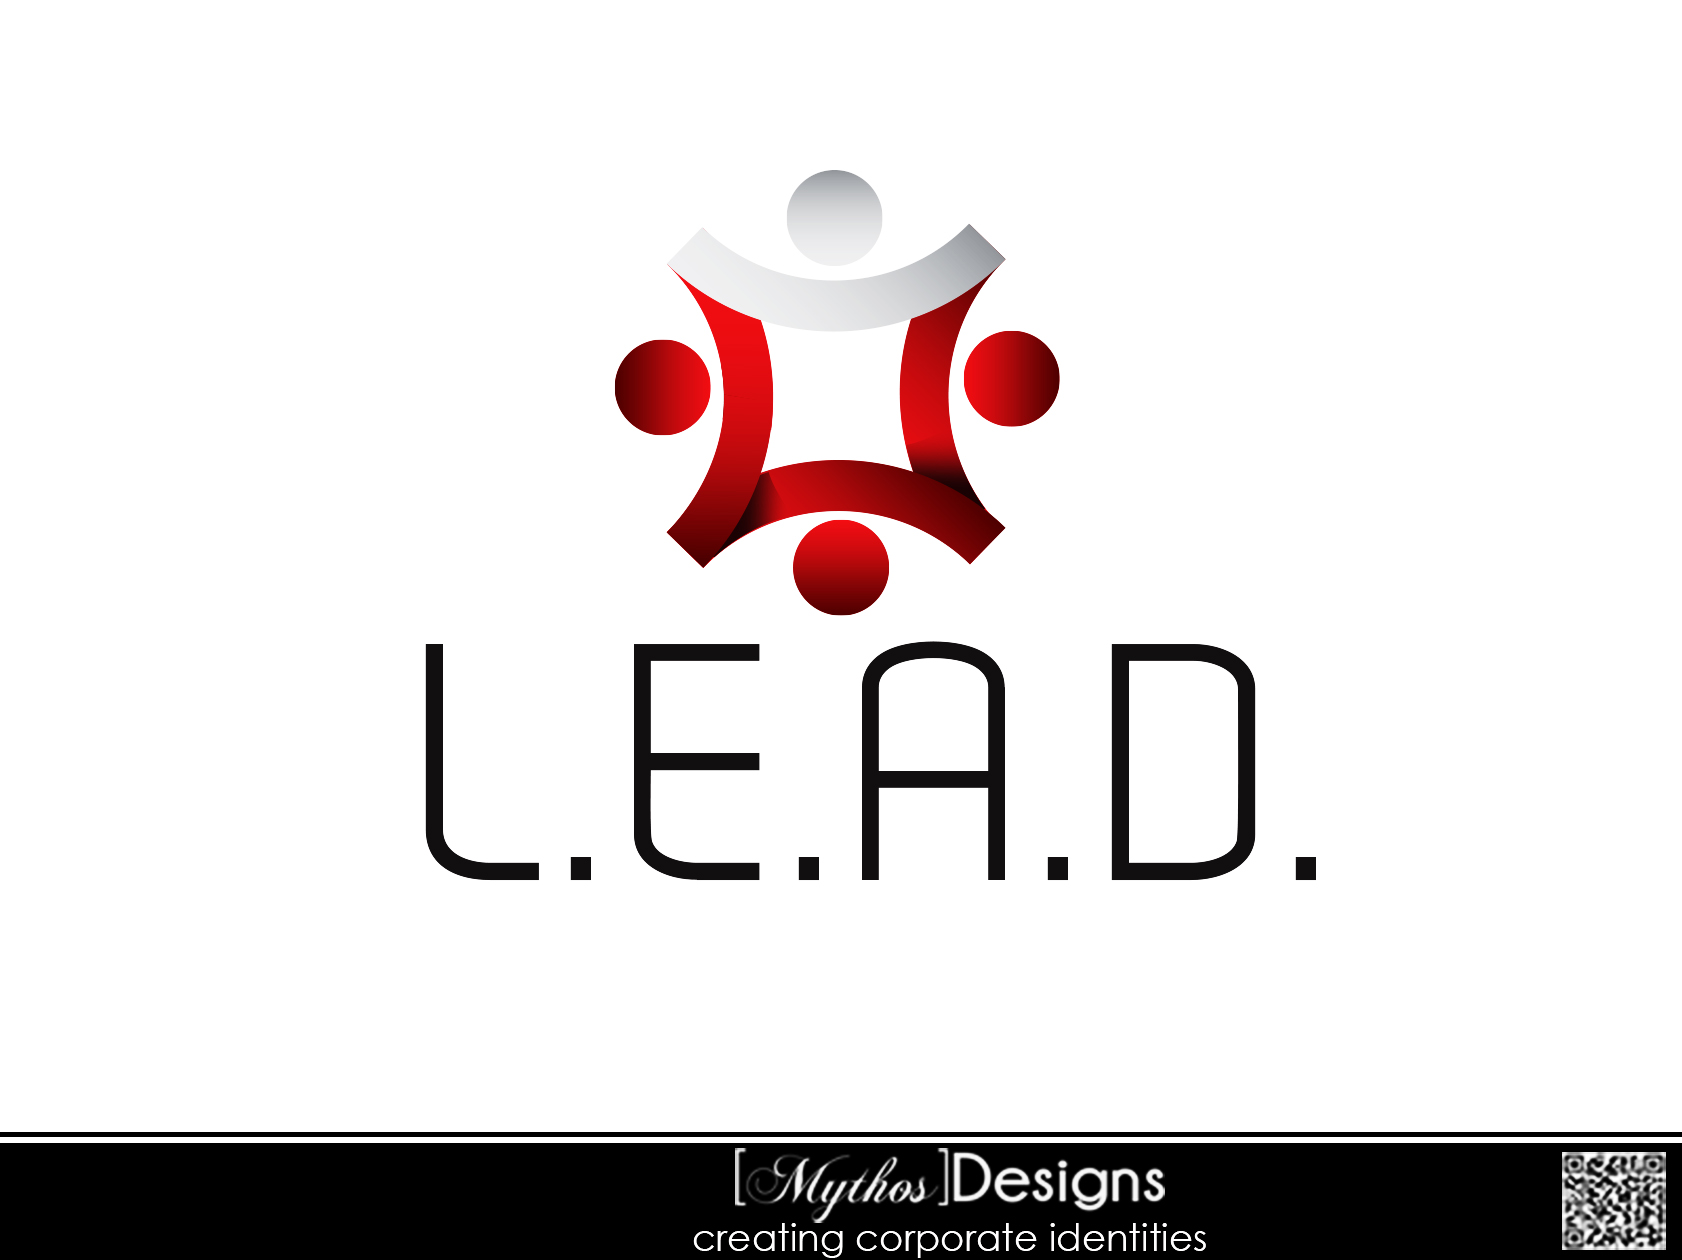 Logo Design by Mythos Designs - Entry No. 59 in the Logo Design Contest L.E.A.D. (learn, engage, analyze, deliberate) Logo Design.